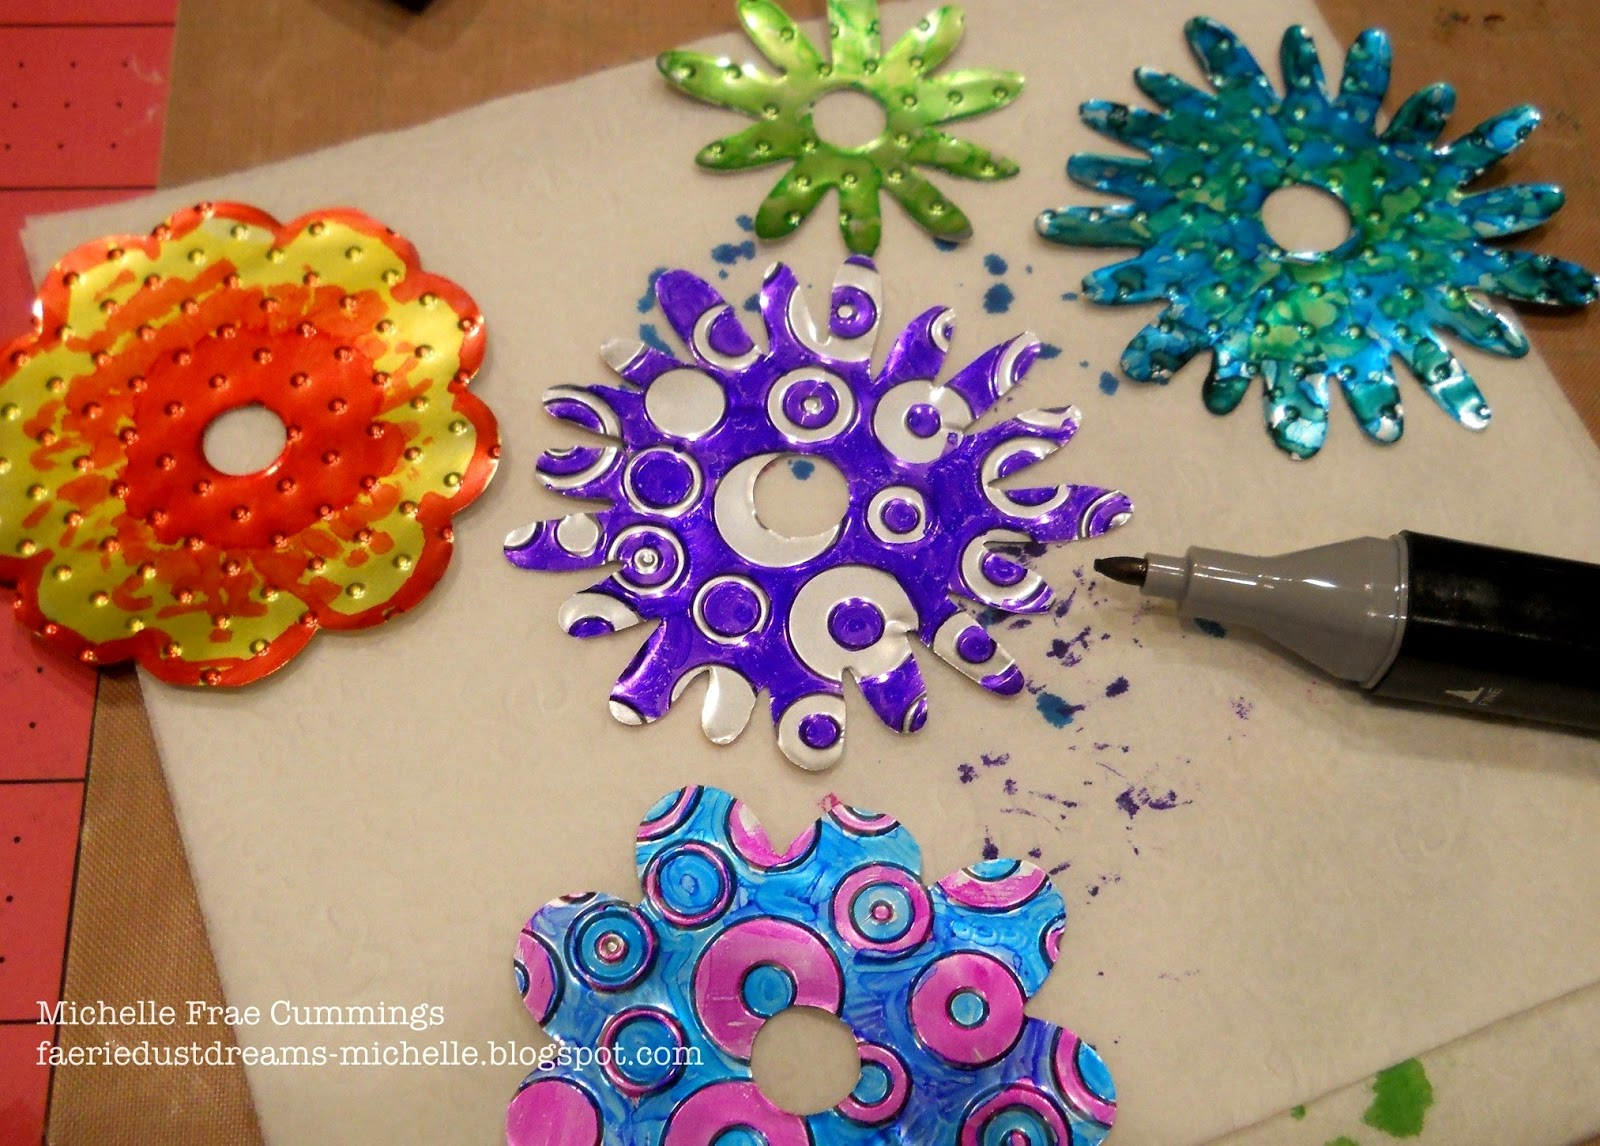 Faerie Dust Dreams How To Make Flowers From Soda Cans